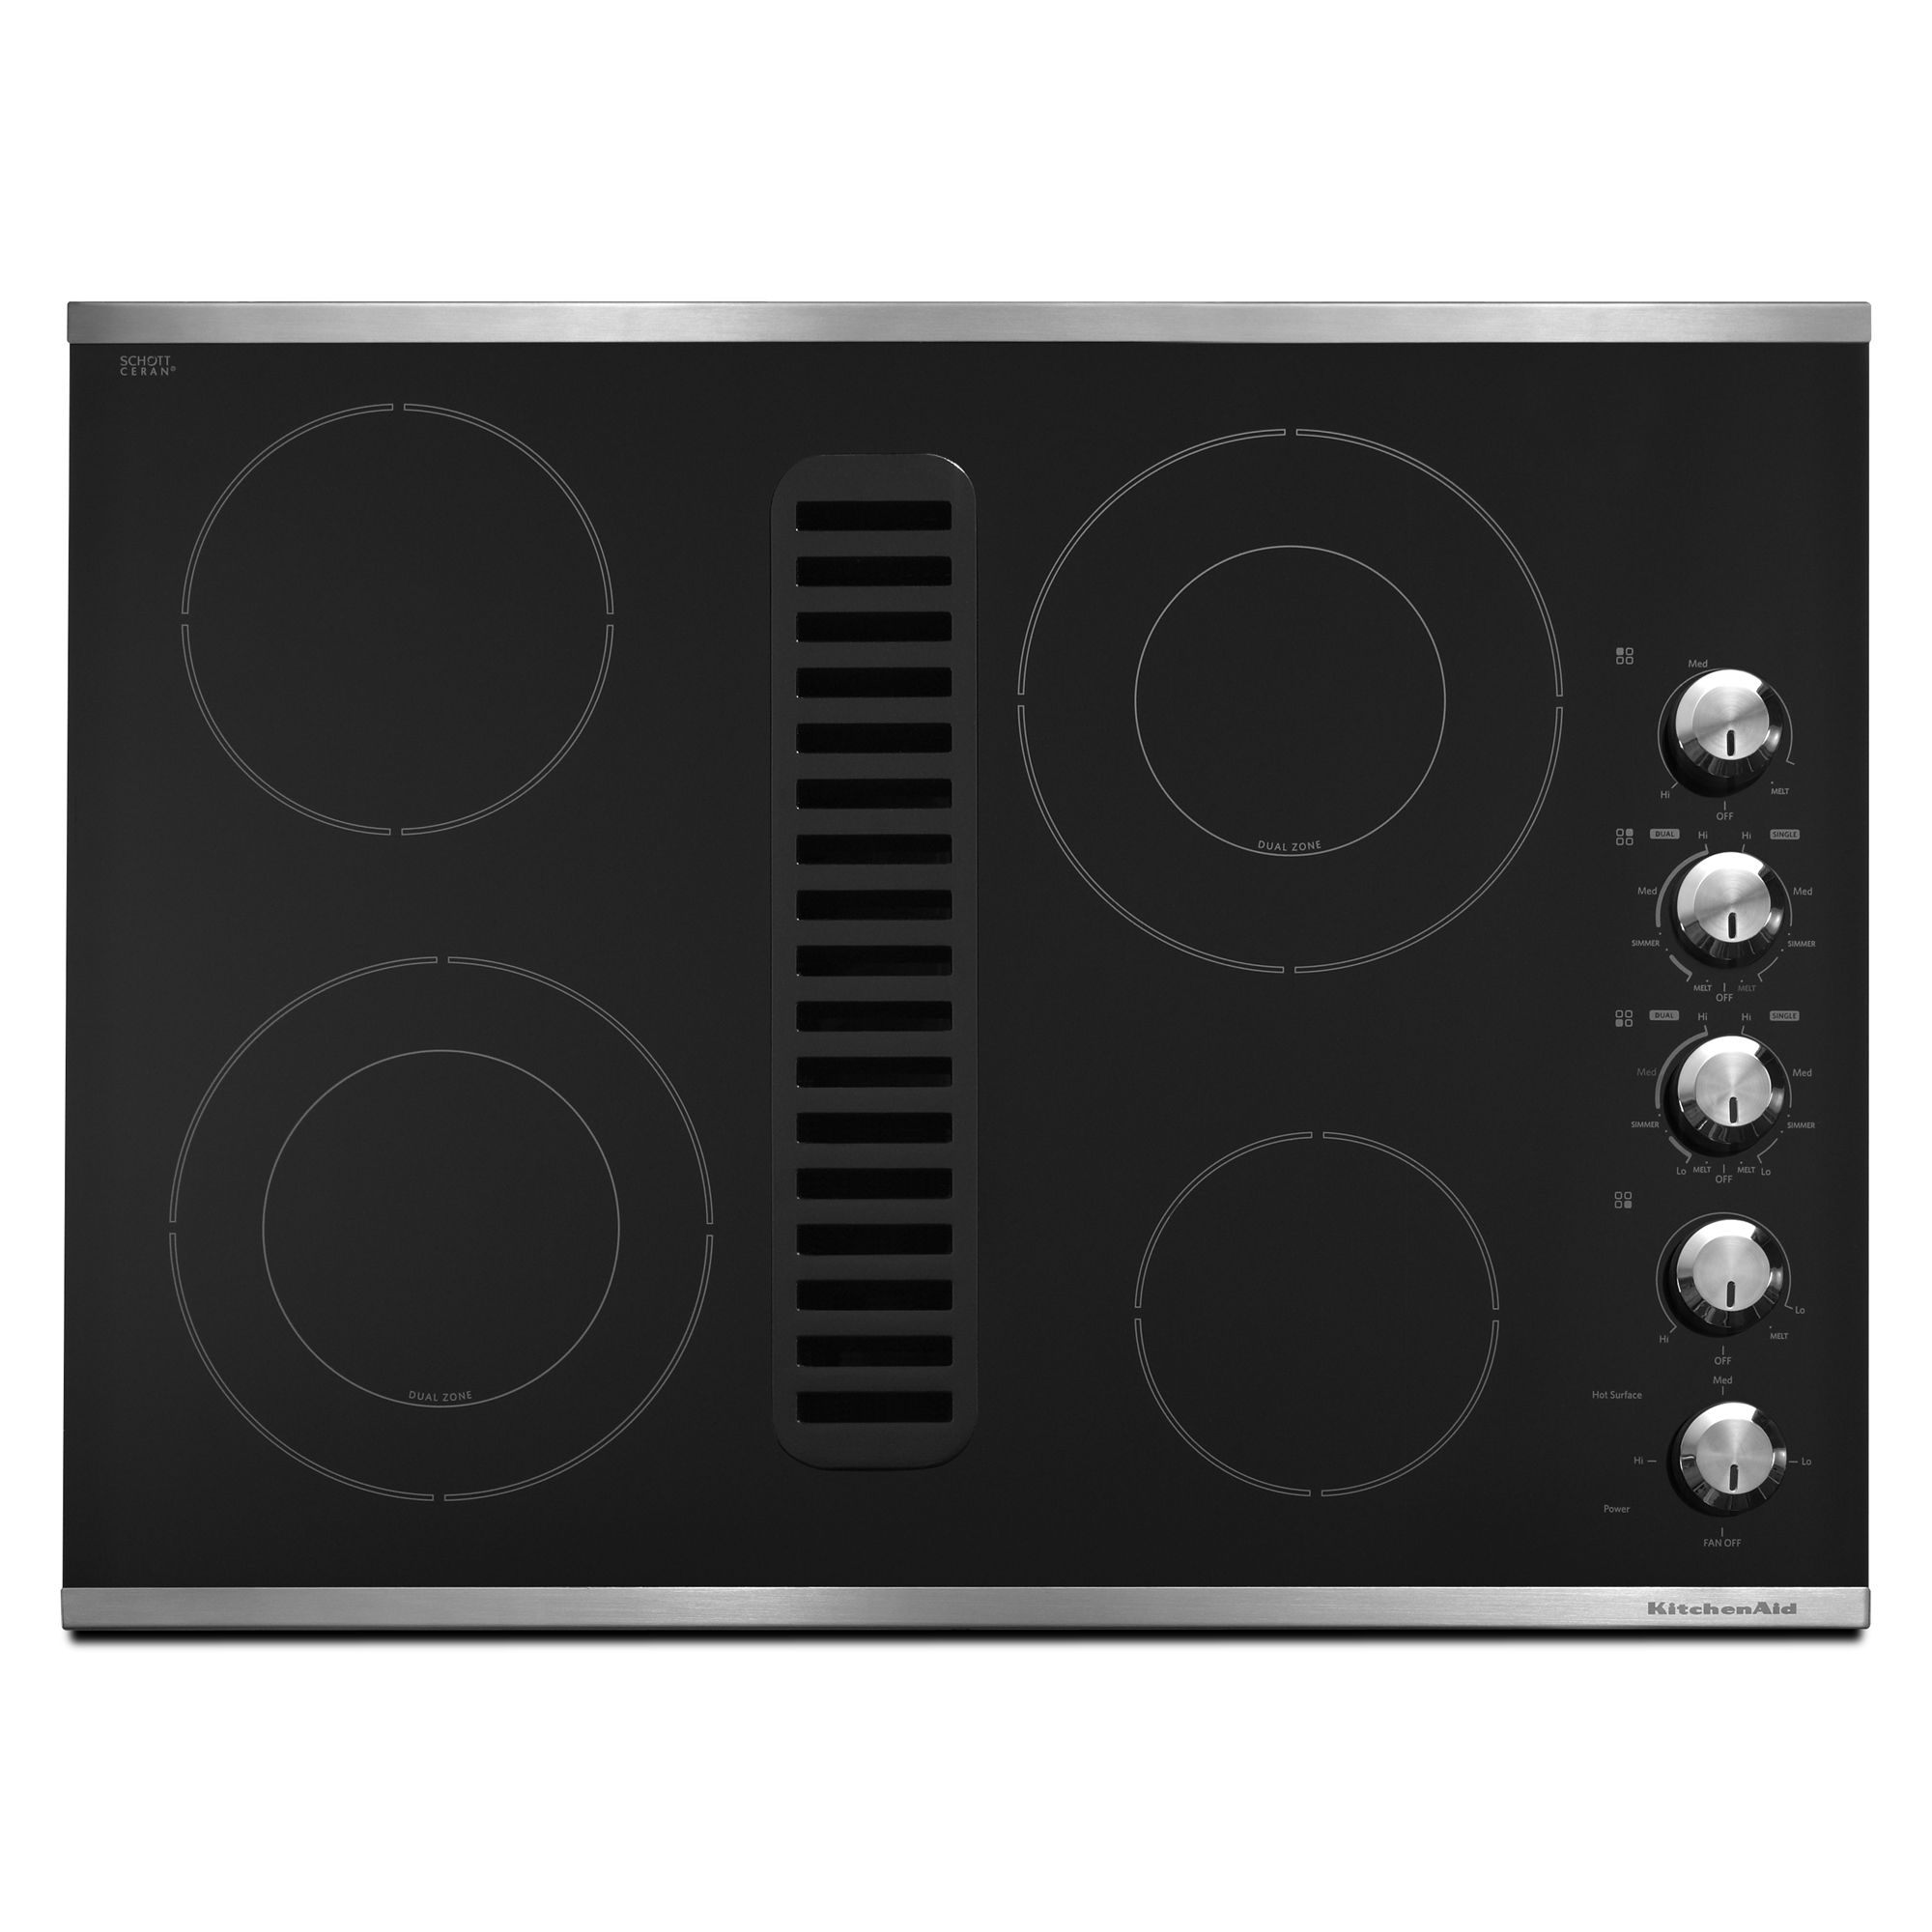 KitchenAid KECD807XSS 30 Electric Downdraft Cooktop